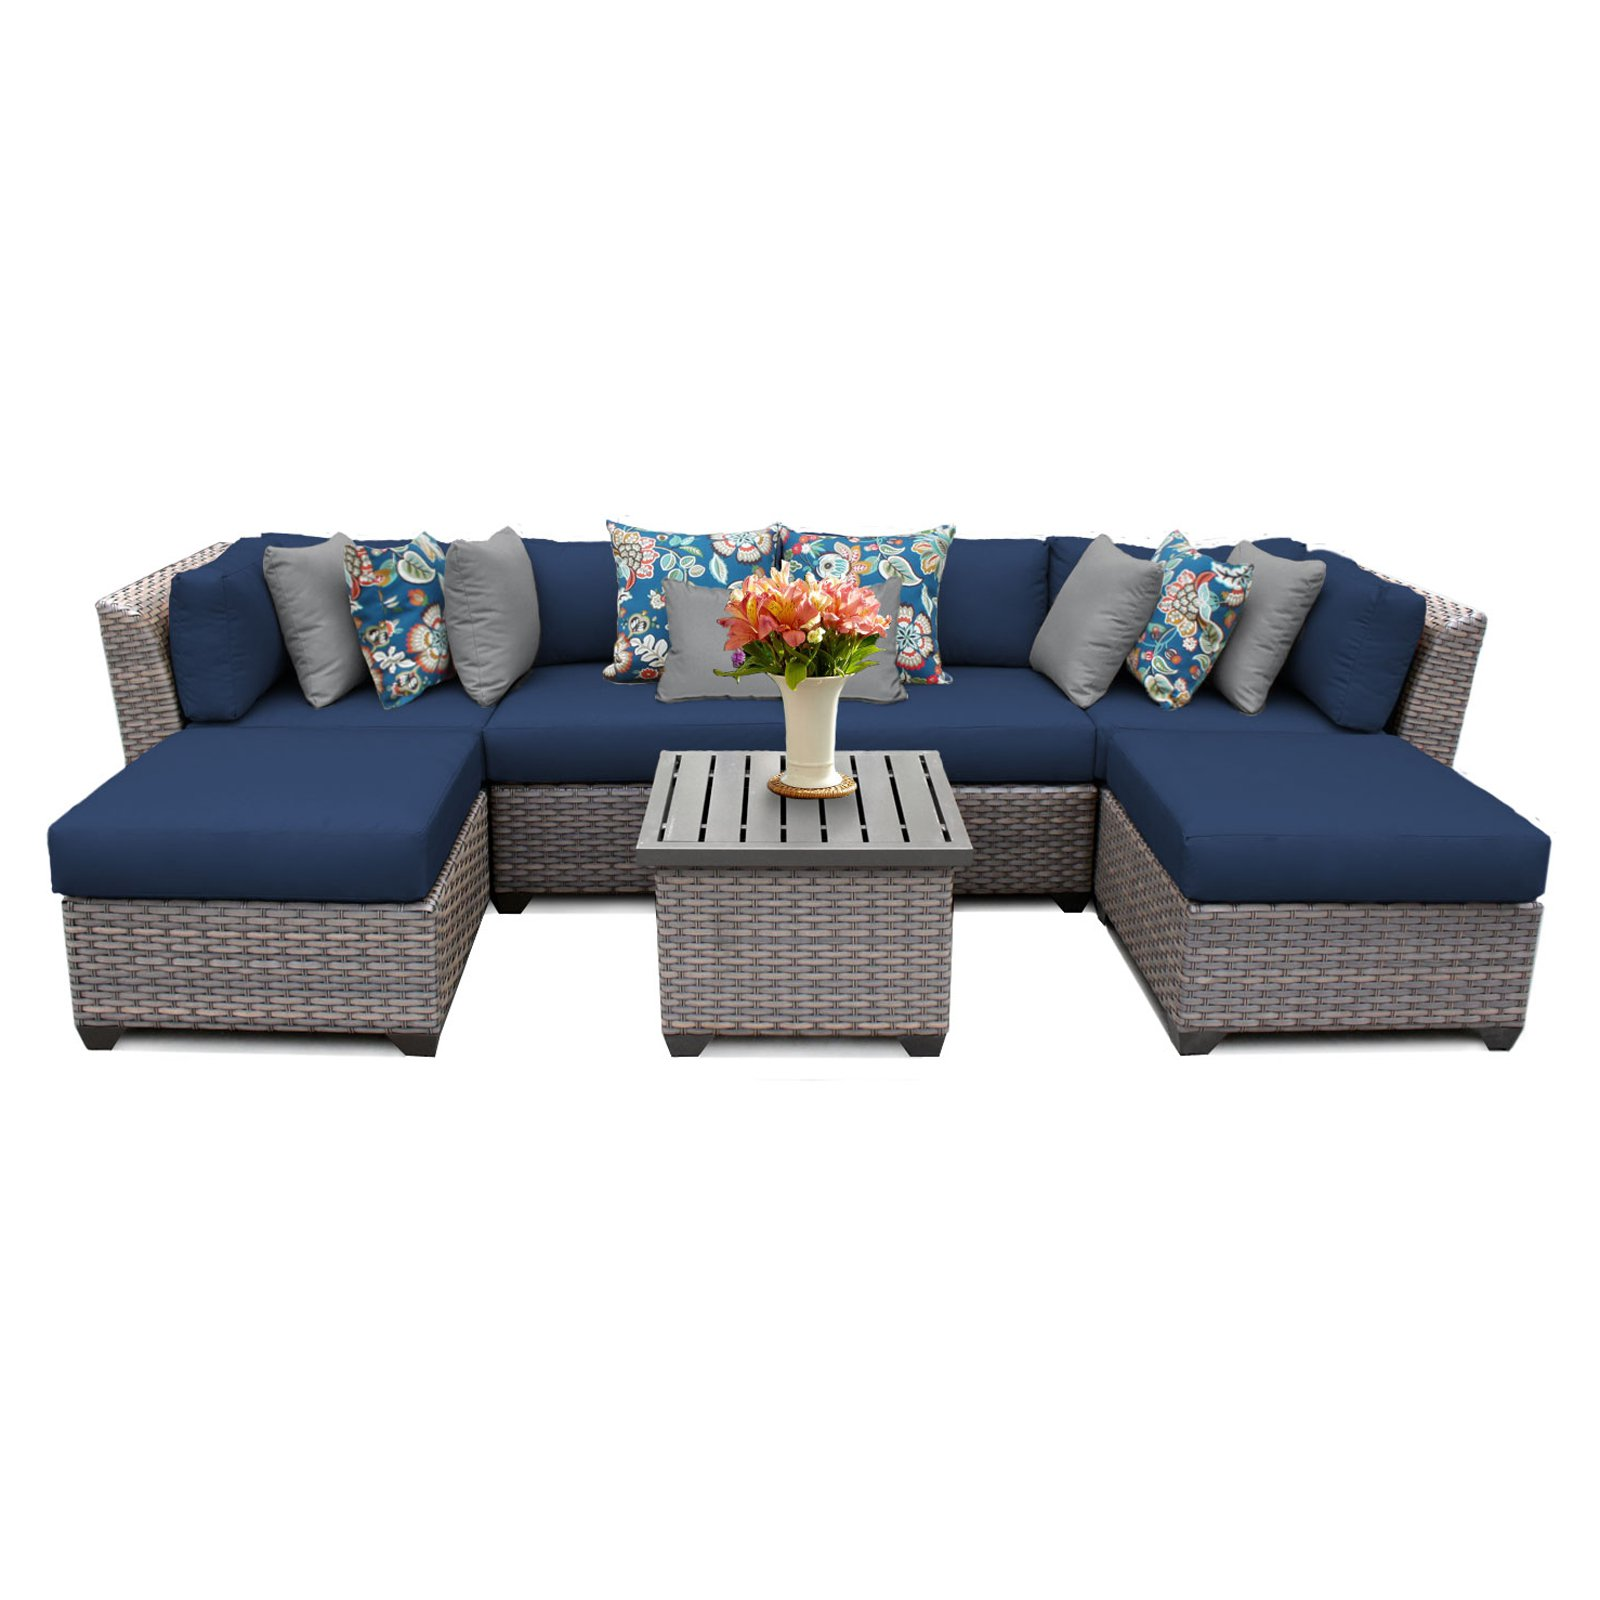 TK Classics Florence Wicker 7 Piece Patio Conversation Set with 2 Sets of Cushion Covers